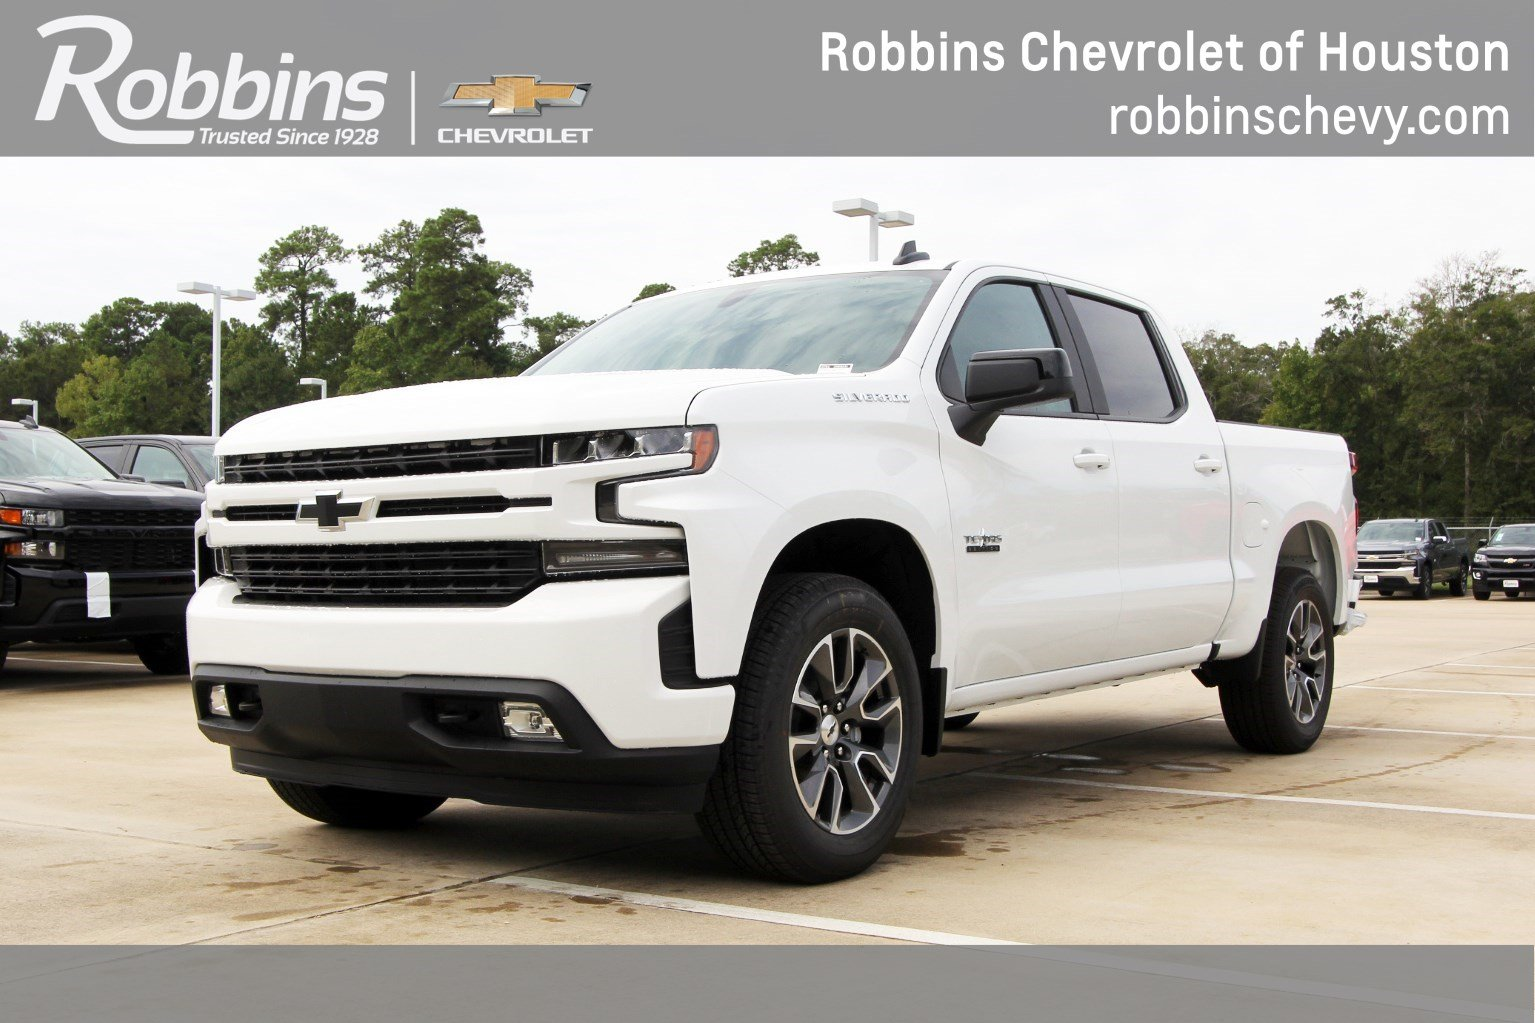 New 2020 Chevrolet Silverado 1500 Texas Edition RST